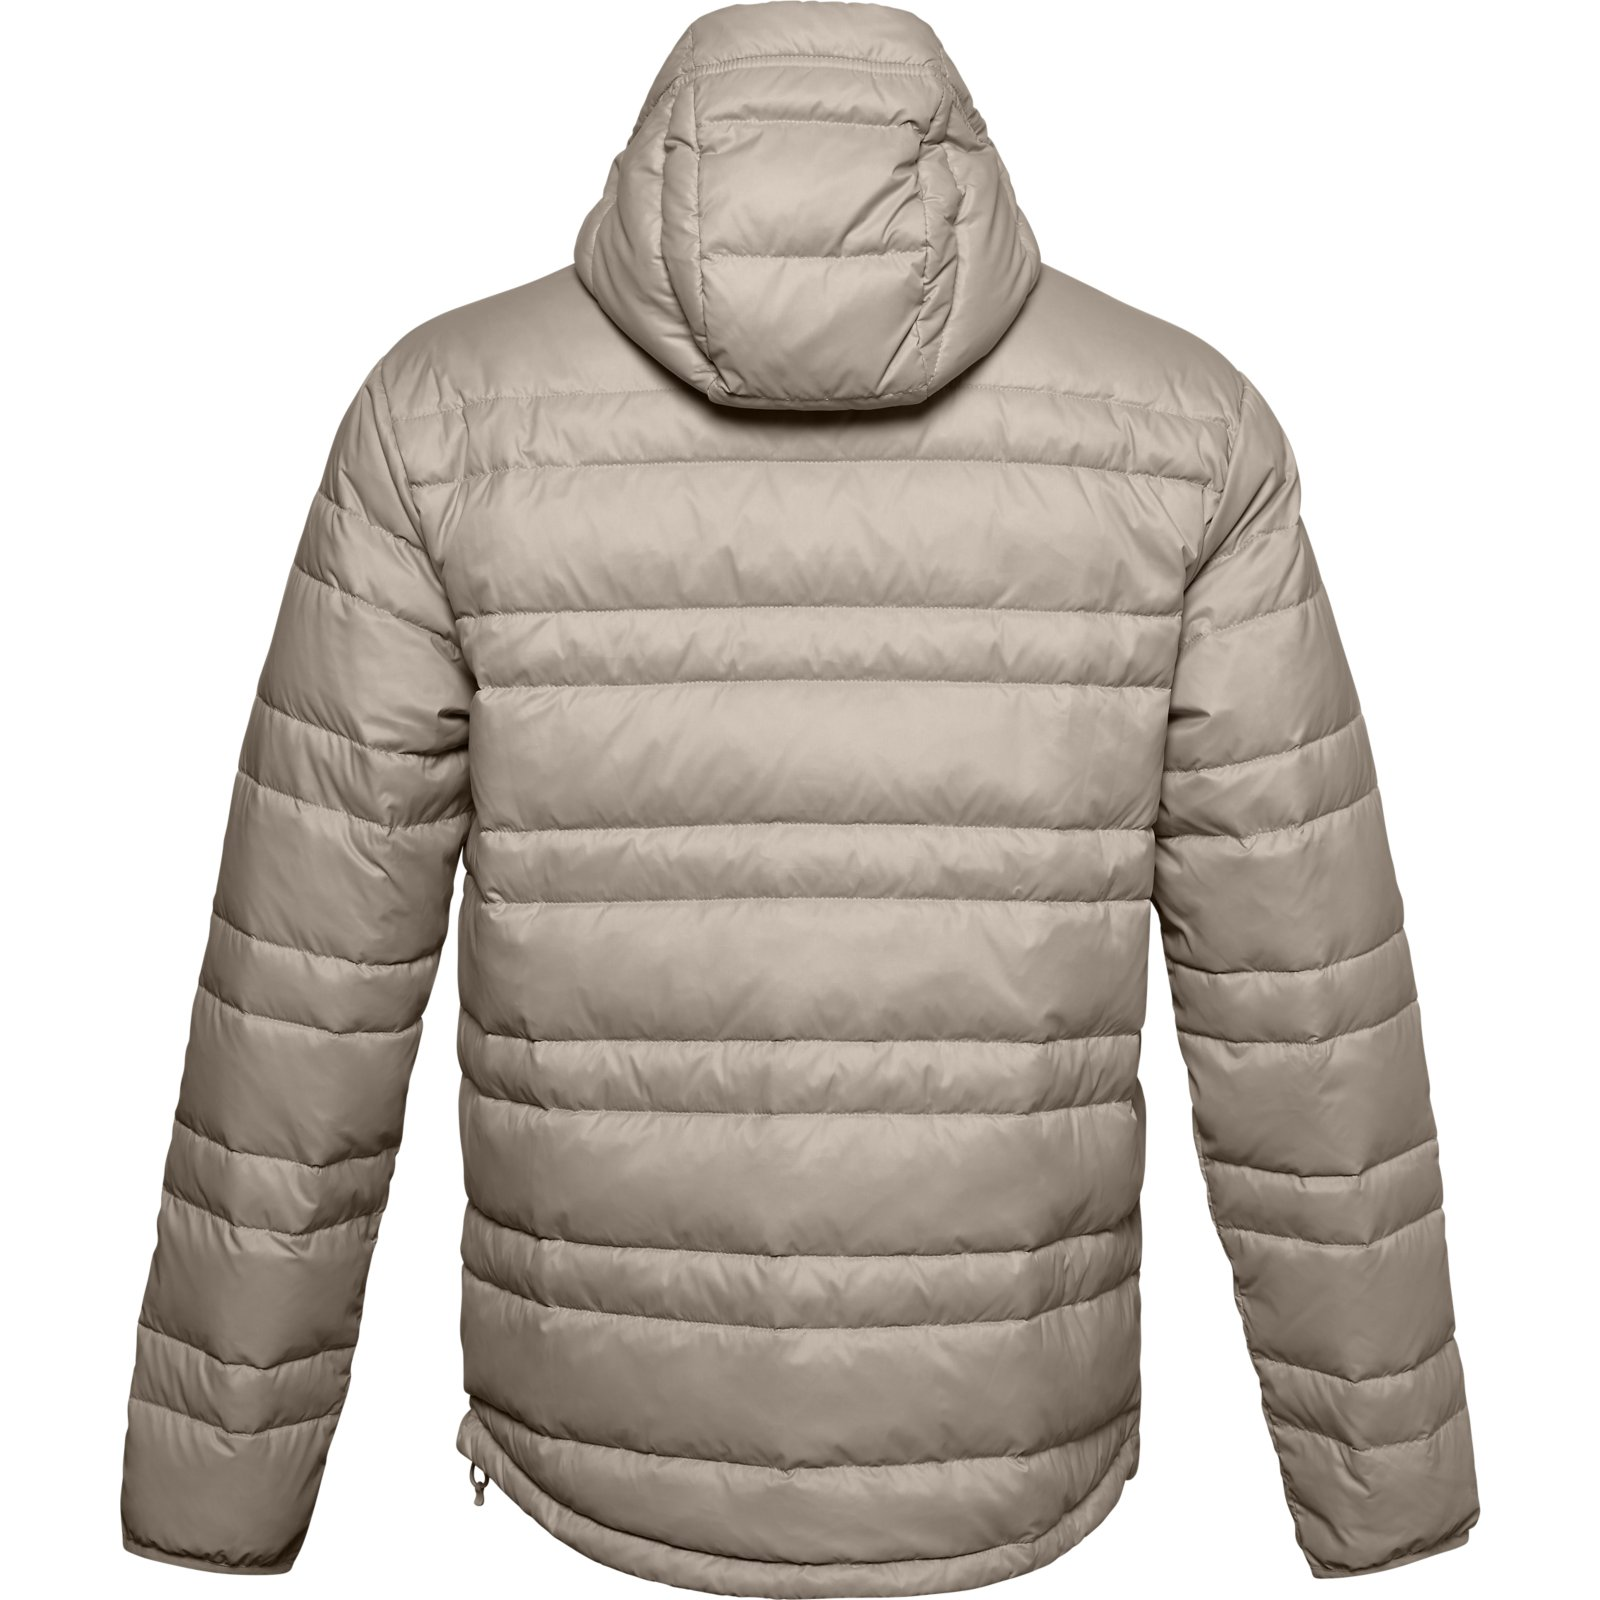 Пуховик Down Hooded Jacket Under Armour Коричневый фото 3